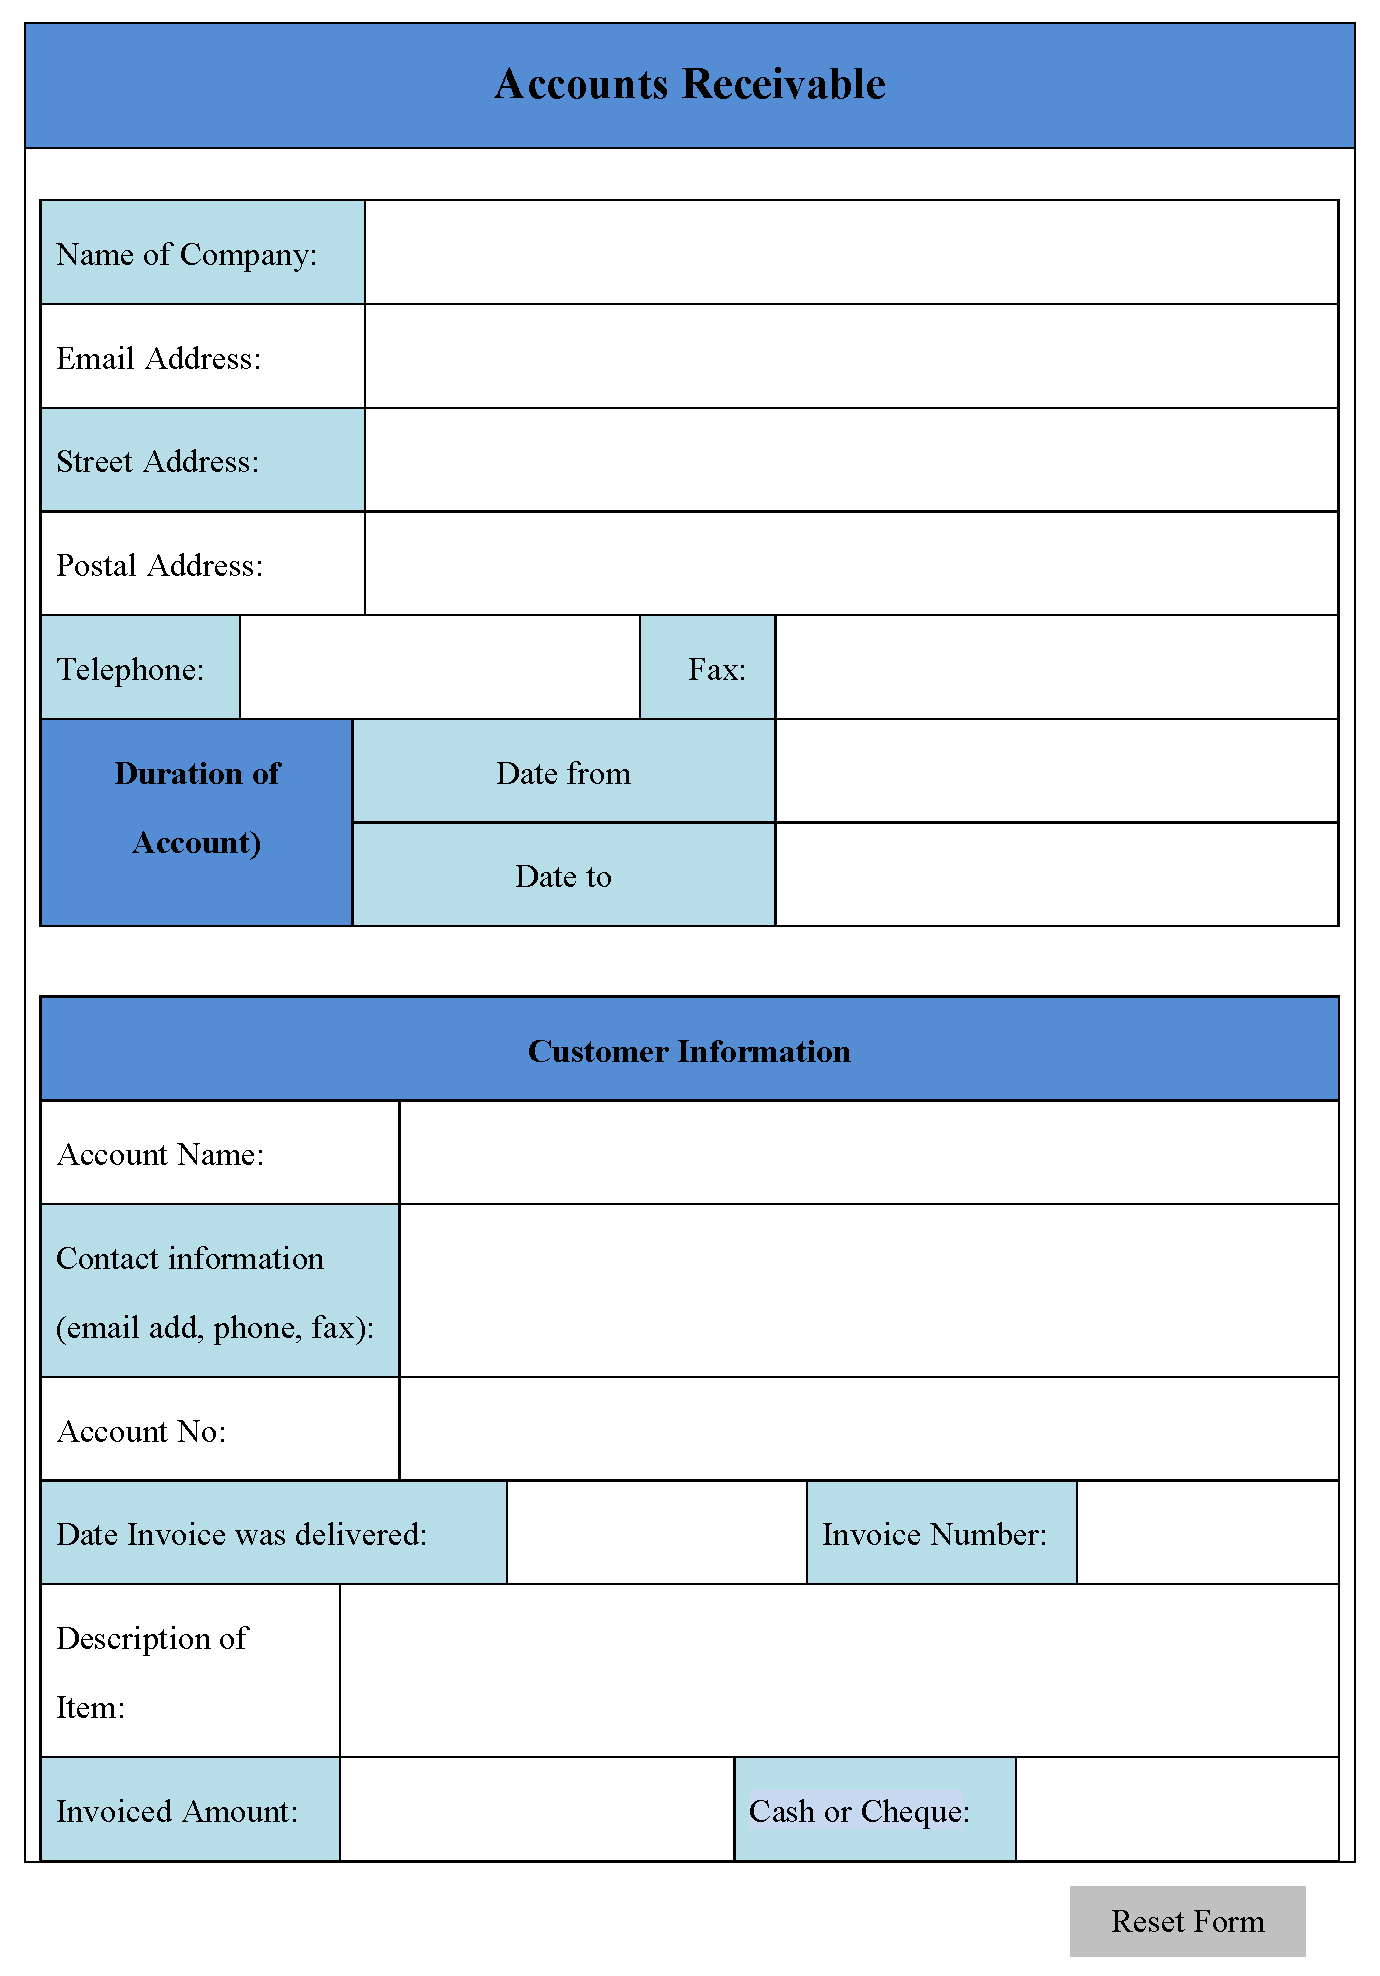 Accounts Receivable Form